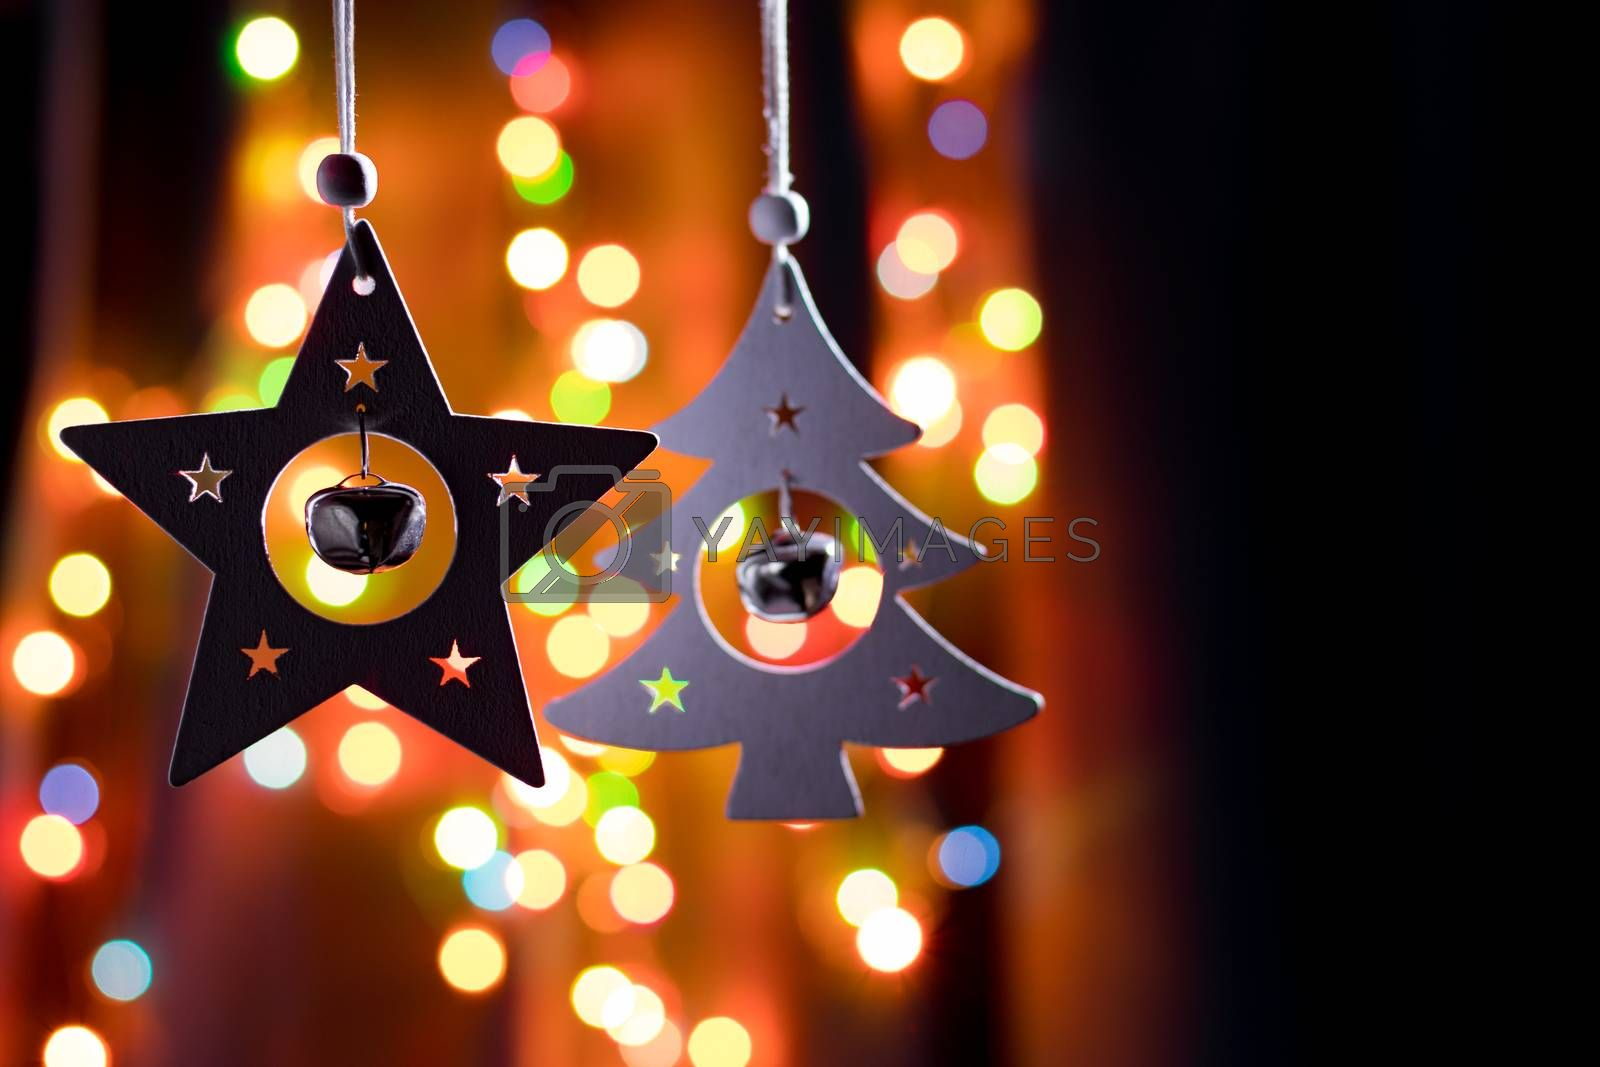 Royalty free image of Handmade Christmas Decorations on Blurred Dark Background by clusterx